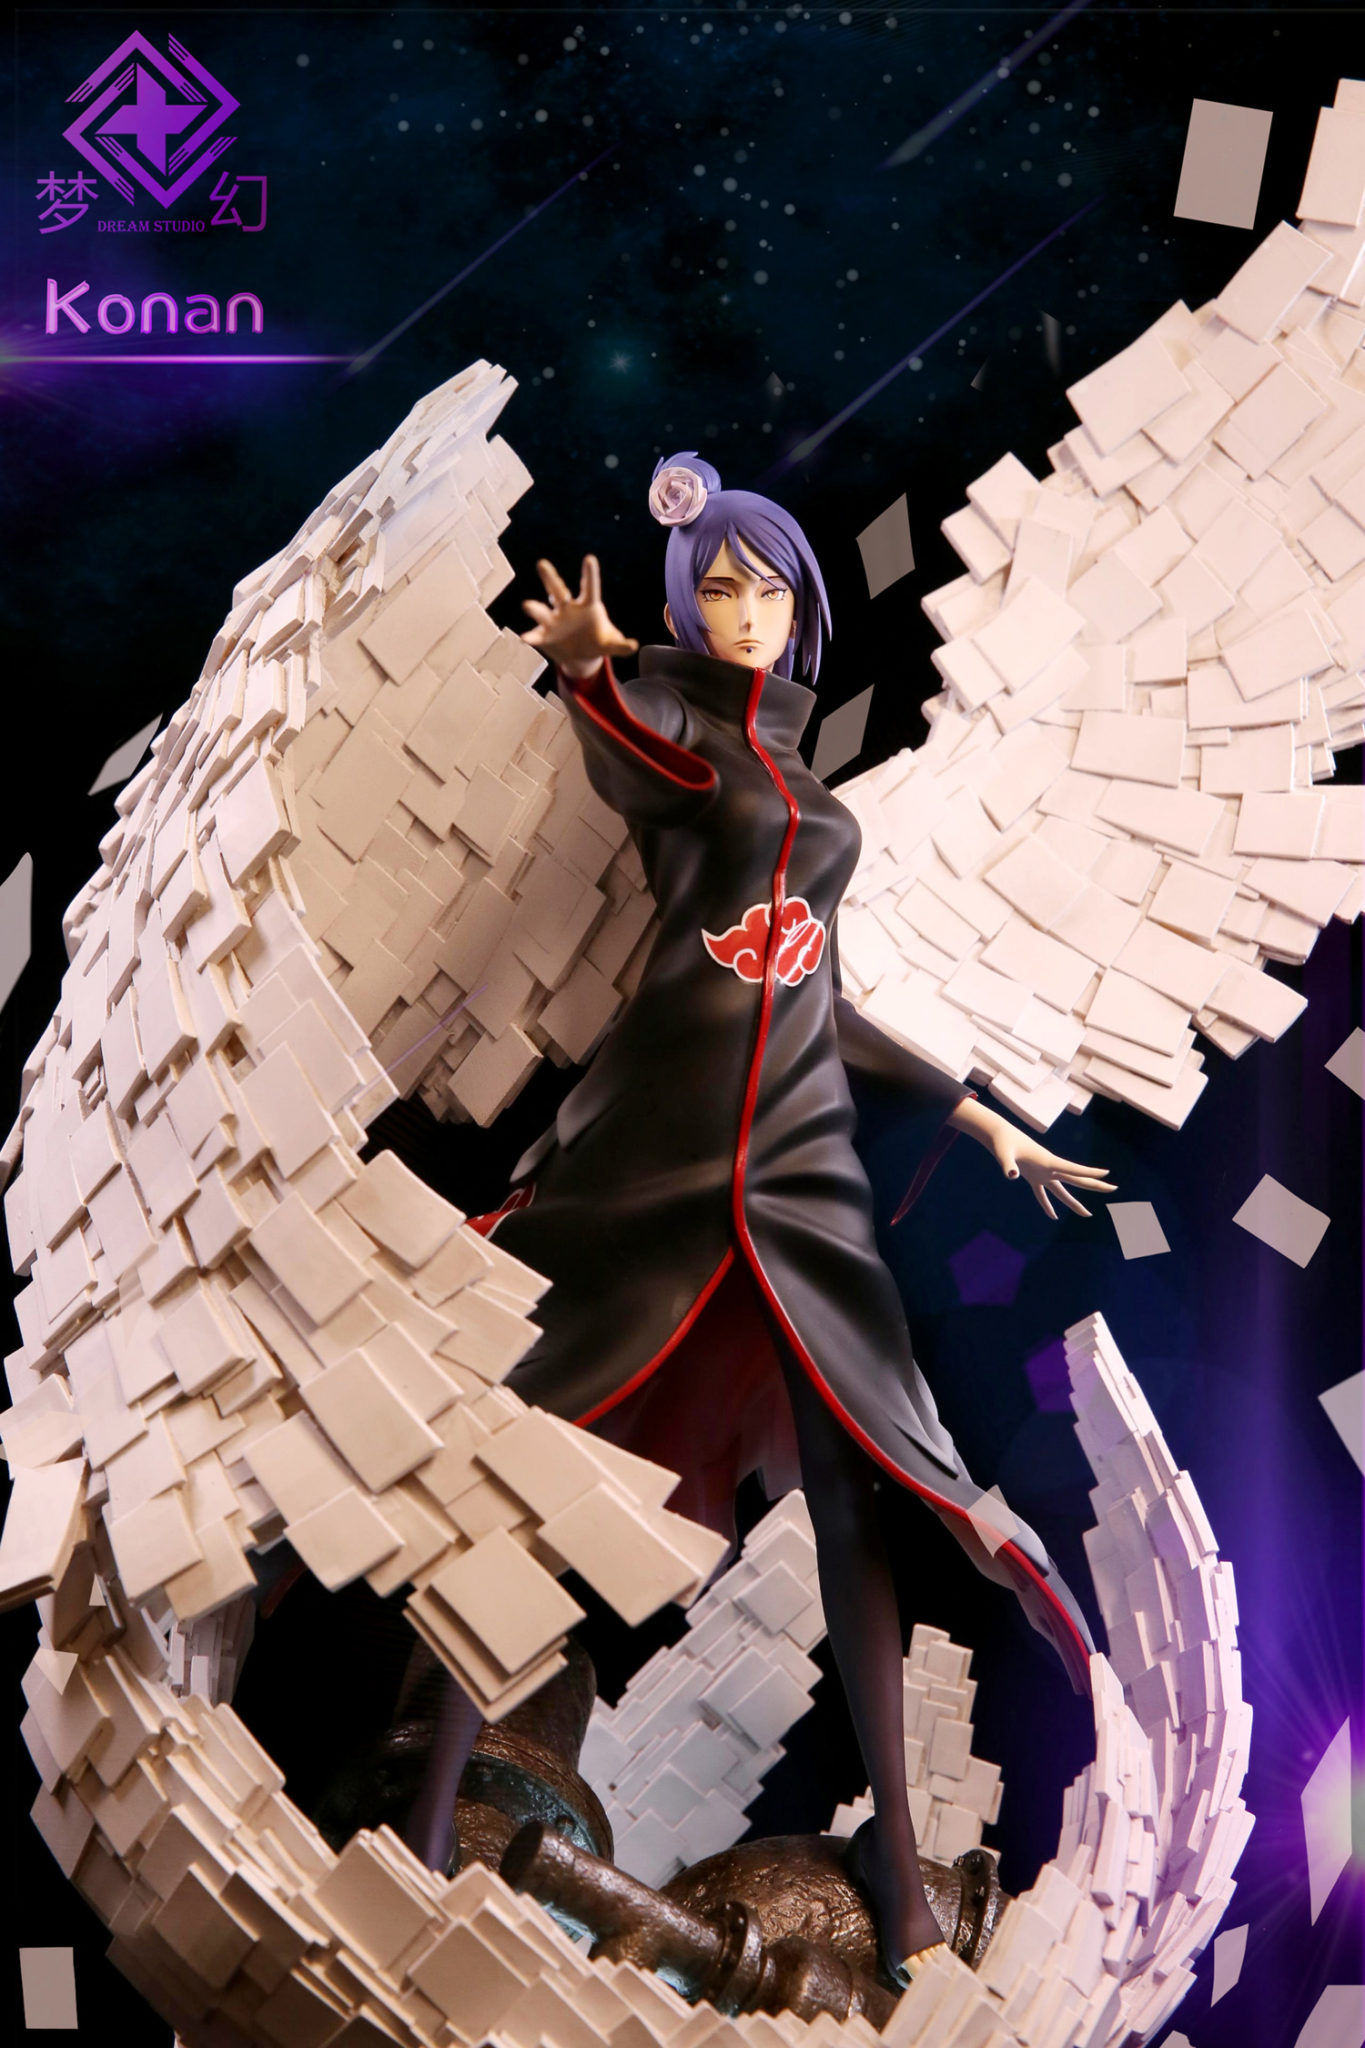 Dream Studio Konan 1/5 Scale Statue Close up 2